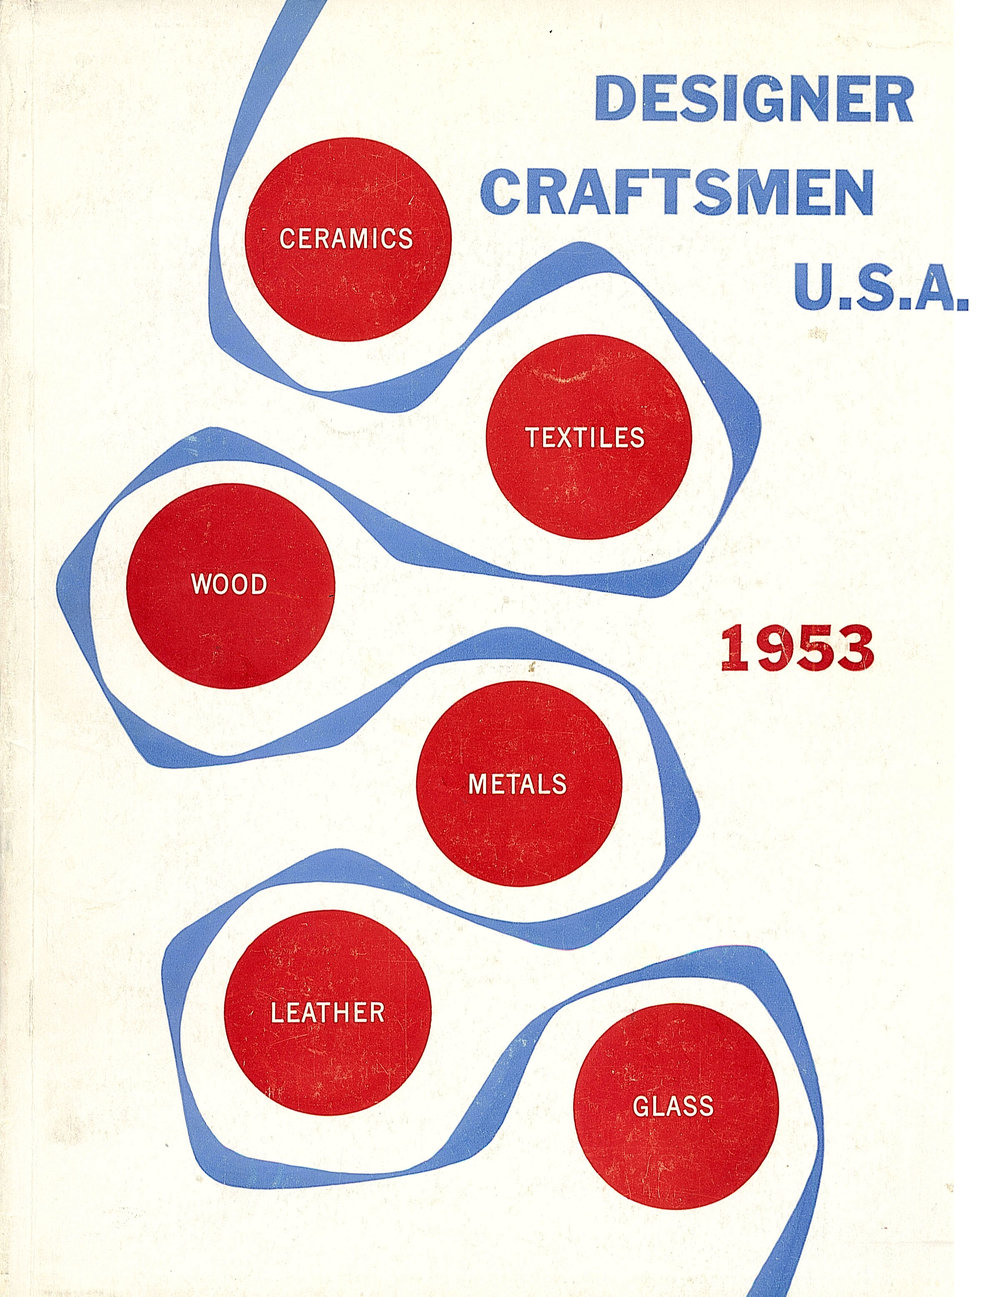 Courtesy of the American Craft Council.